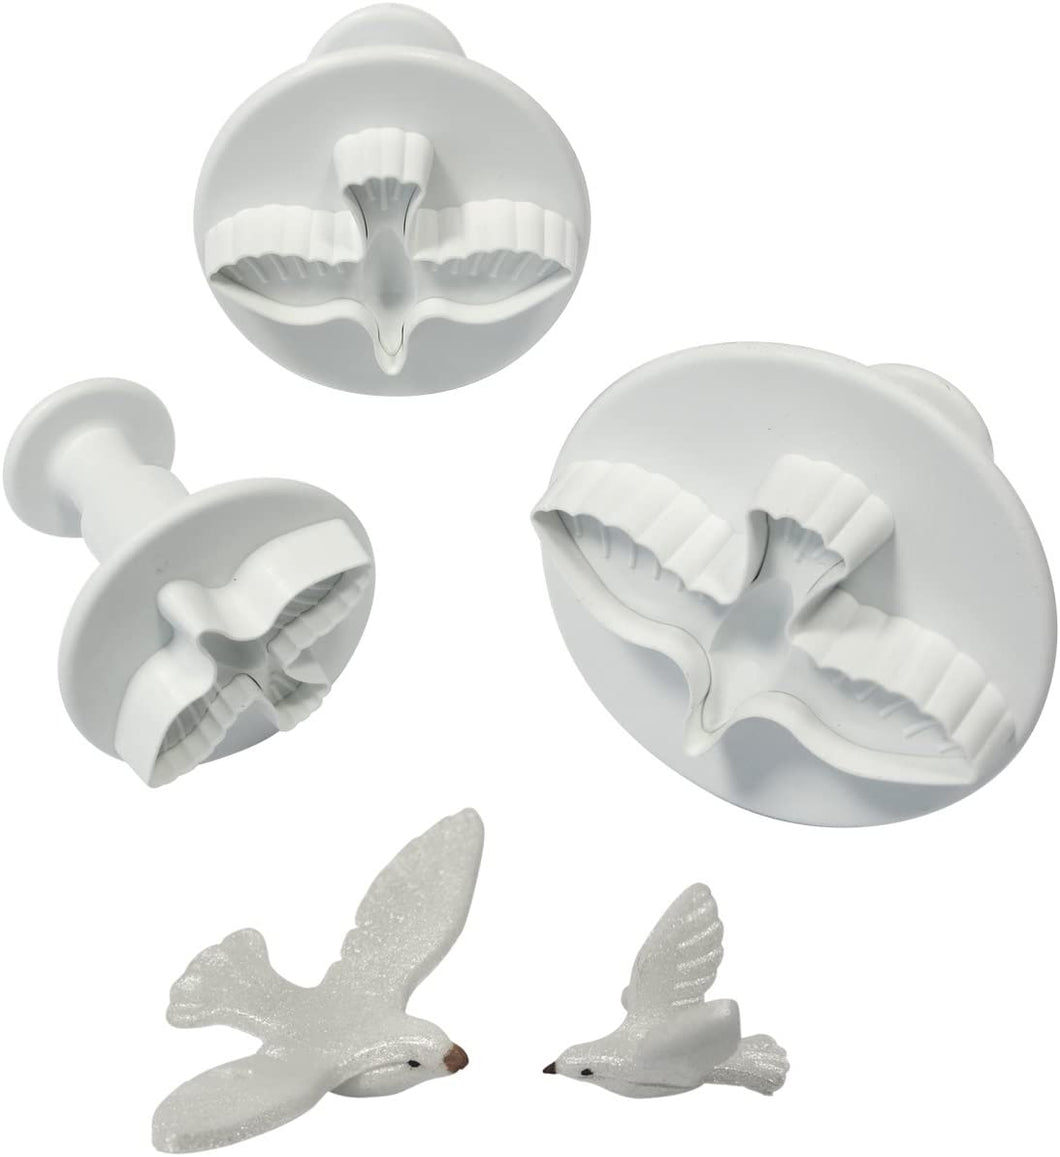 Cutters - Dove plungers - set of 3 PMM